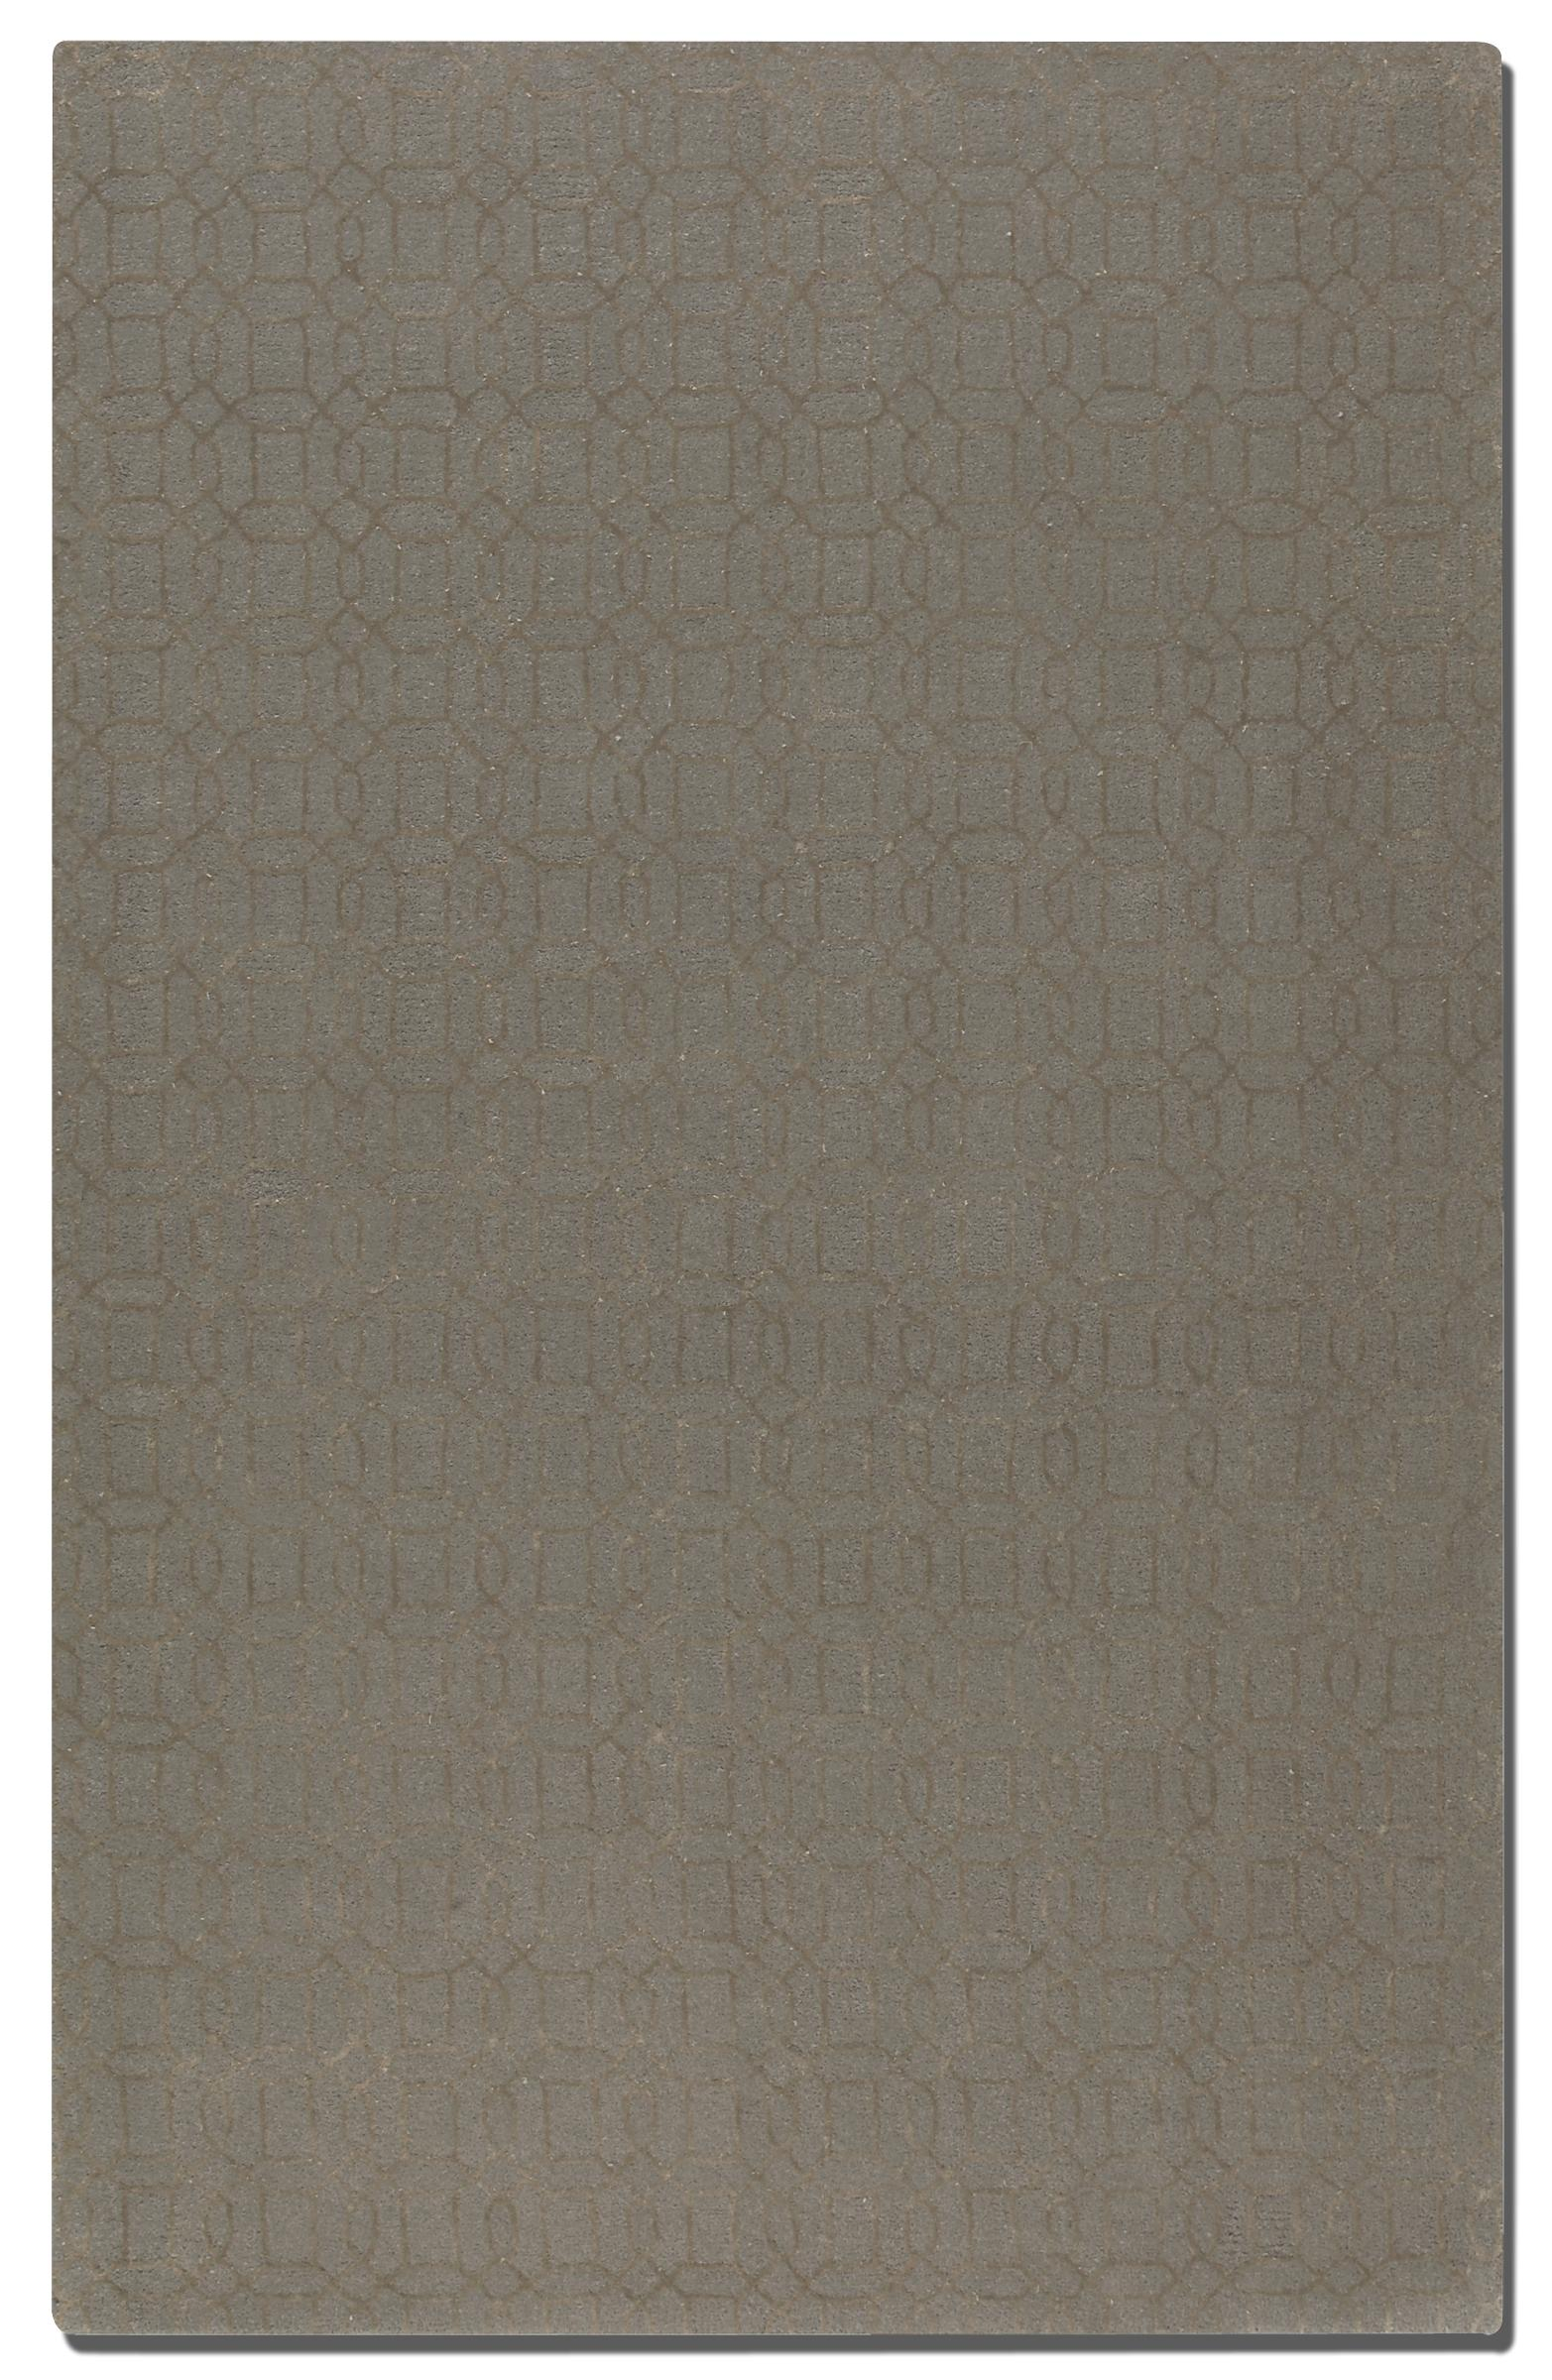 Uttermost Rugs Cambridge 8 X 10  - Item Number: 73027-8